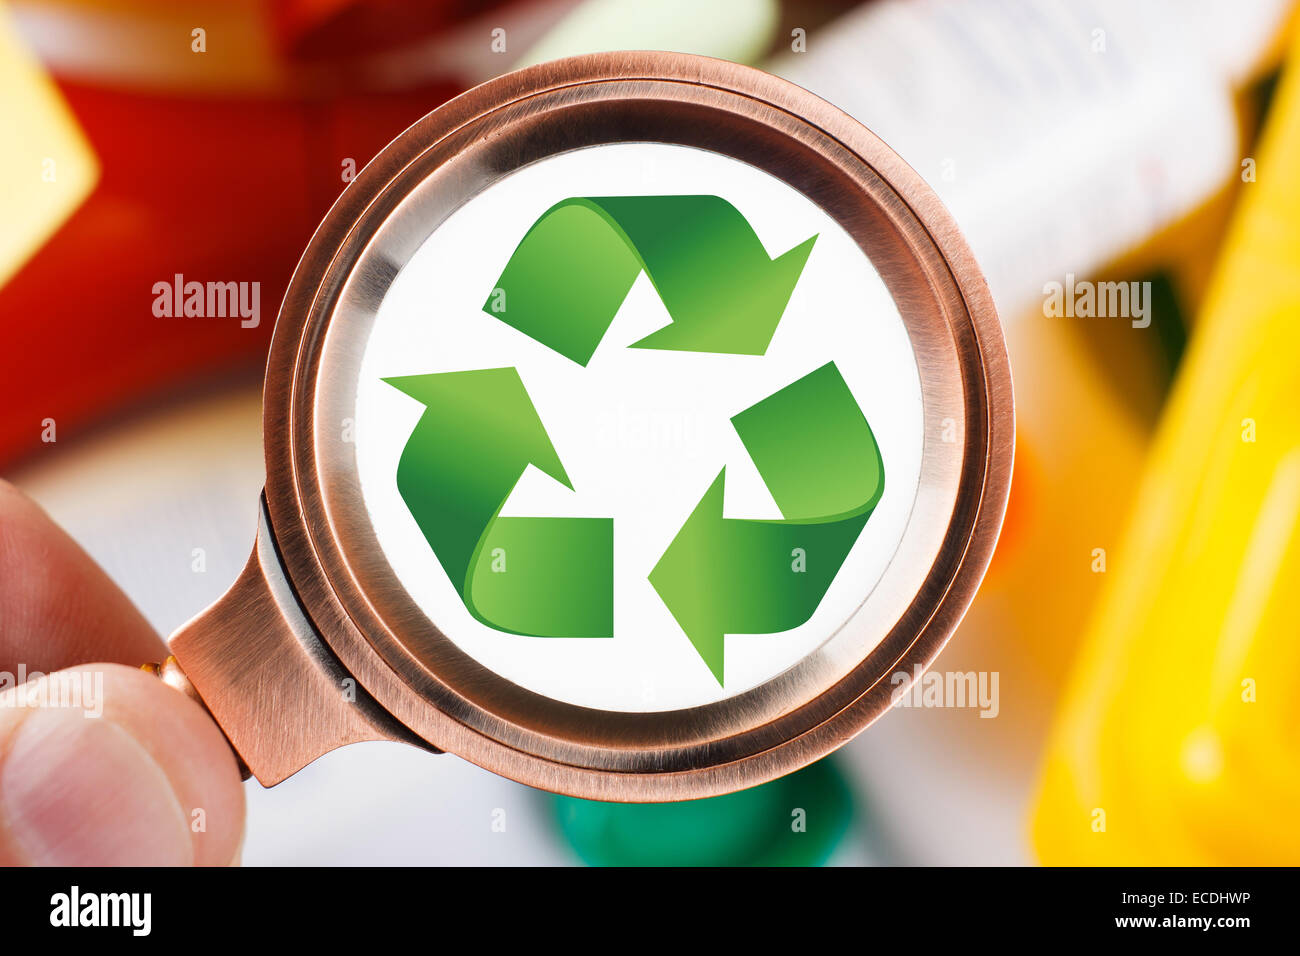 Men looking for a recycling symbol on plastic garbage - Stock Image